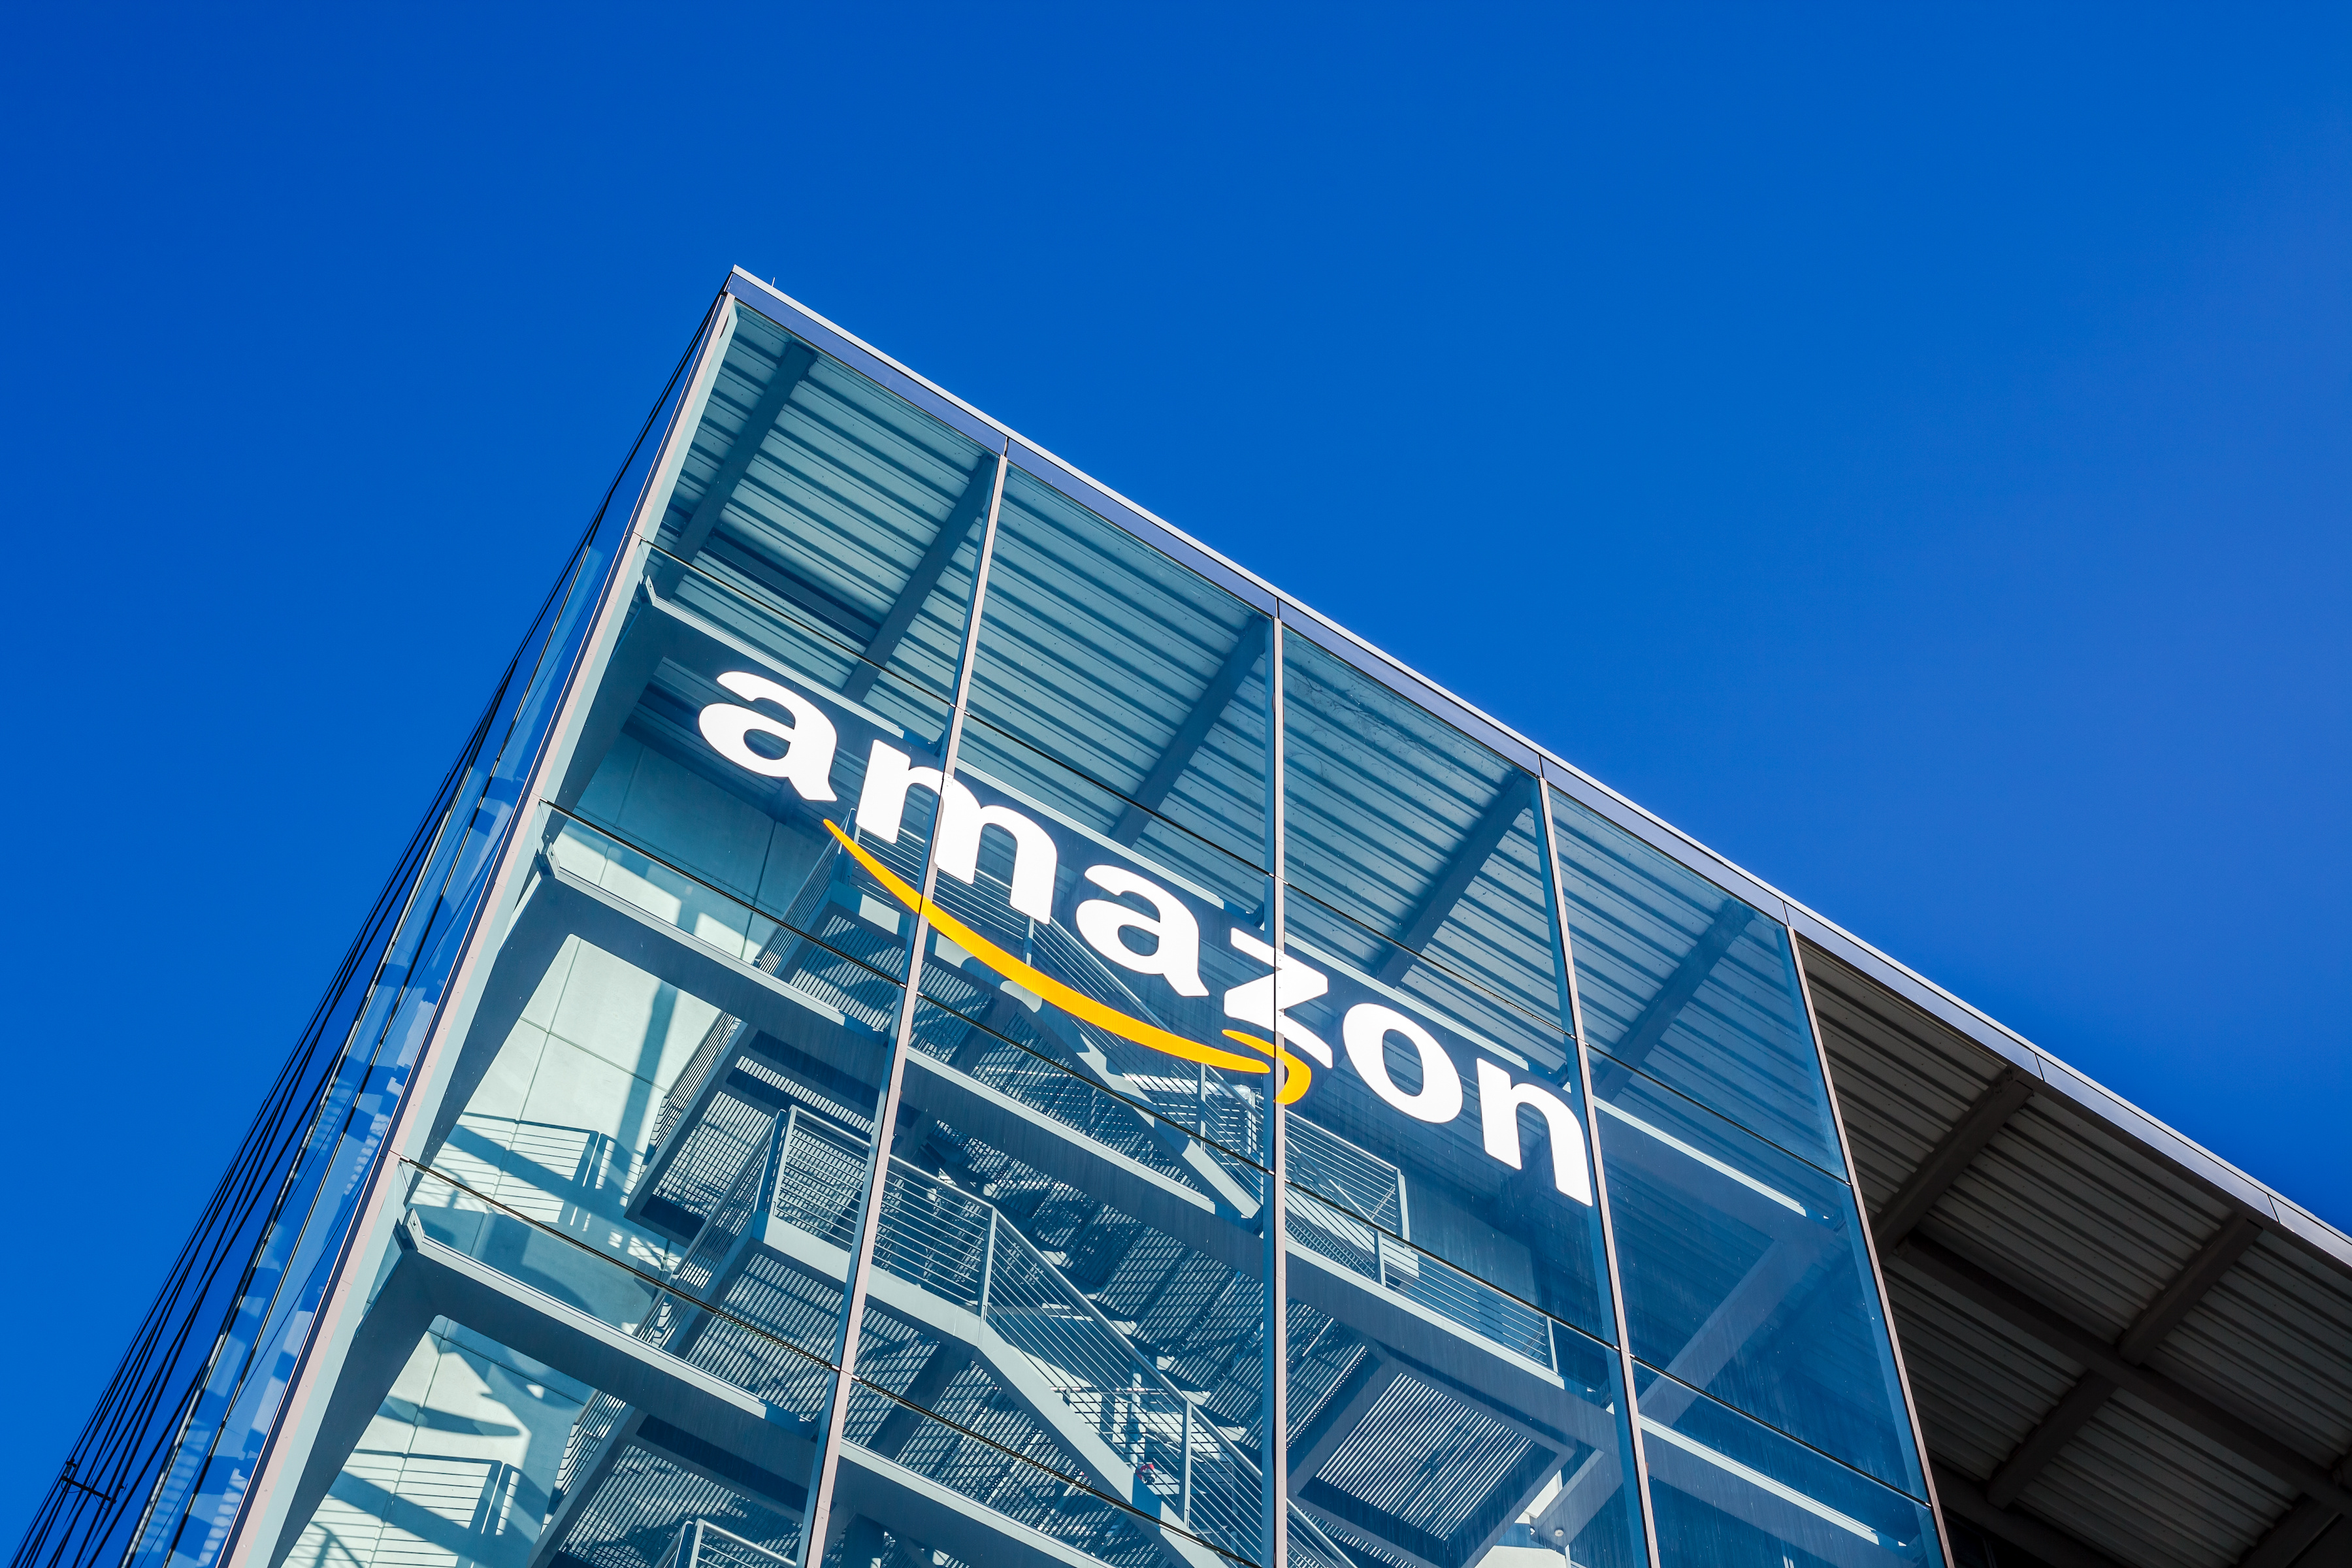 Amazon Prime Day took center stage this week, illustrating how the continued chaos in ocean freight is slowing down global supply chains. A deeper dive into Amazon's Prime Day, Elon Musk, DP World and Virgin Hyperloop interest in container transport, and other news that is impacting global trade in this week's Friday Five!